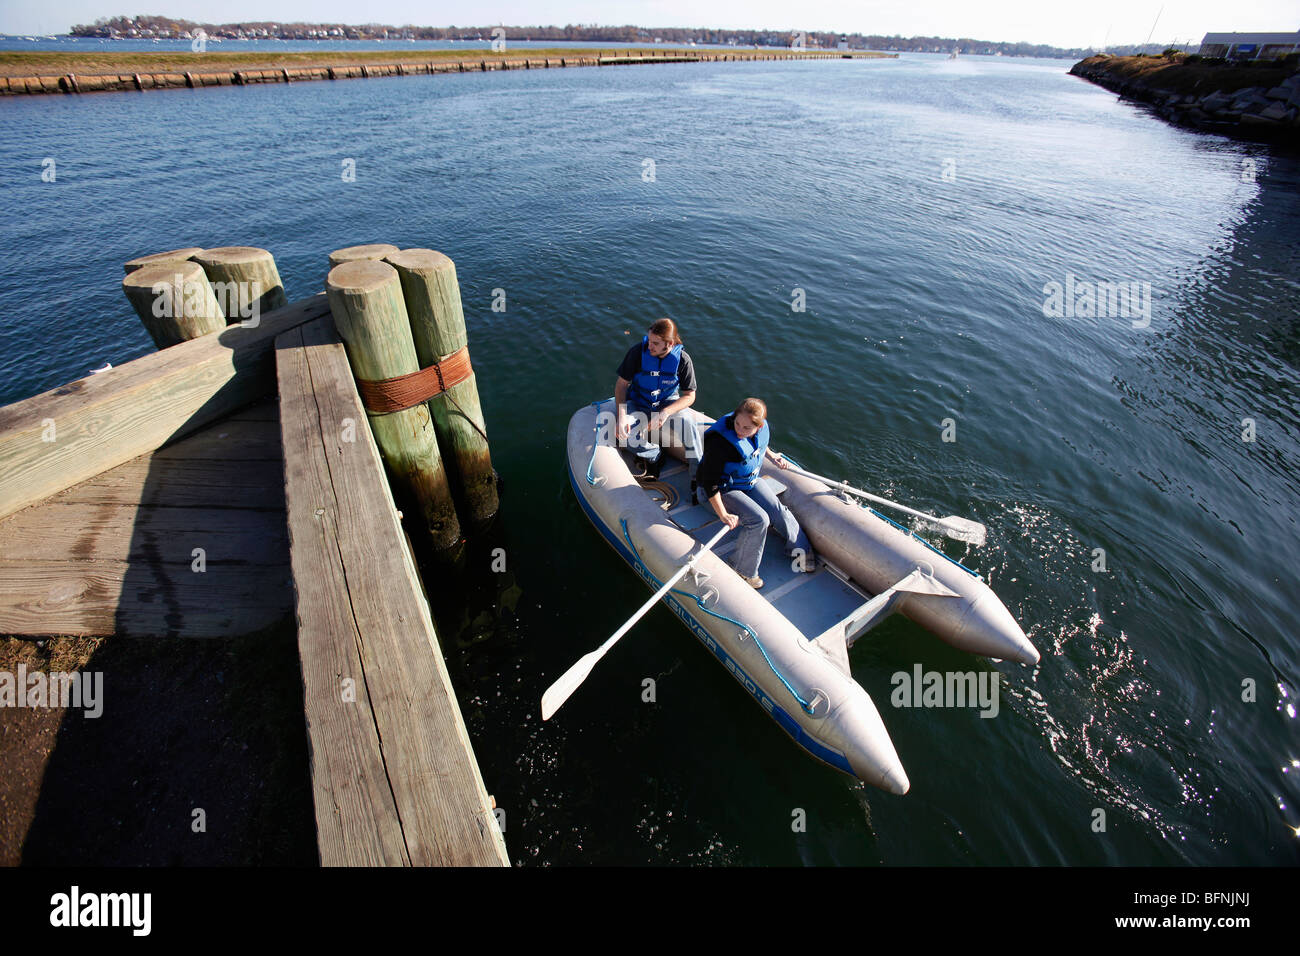 A young man and woman in an inflatable dinghy, Salem, Massachusetts - Stock Image